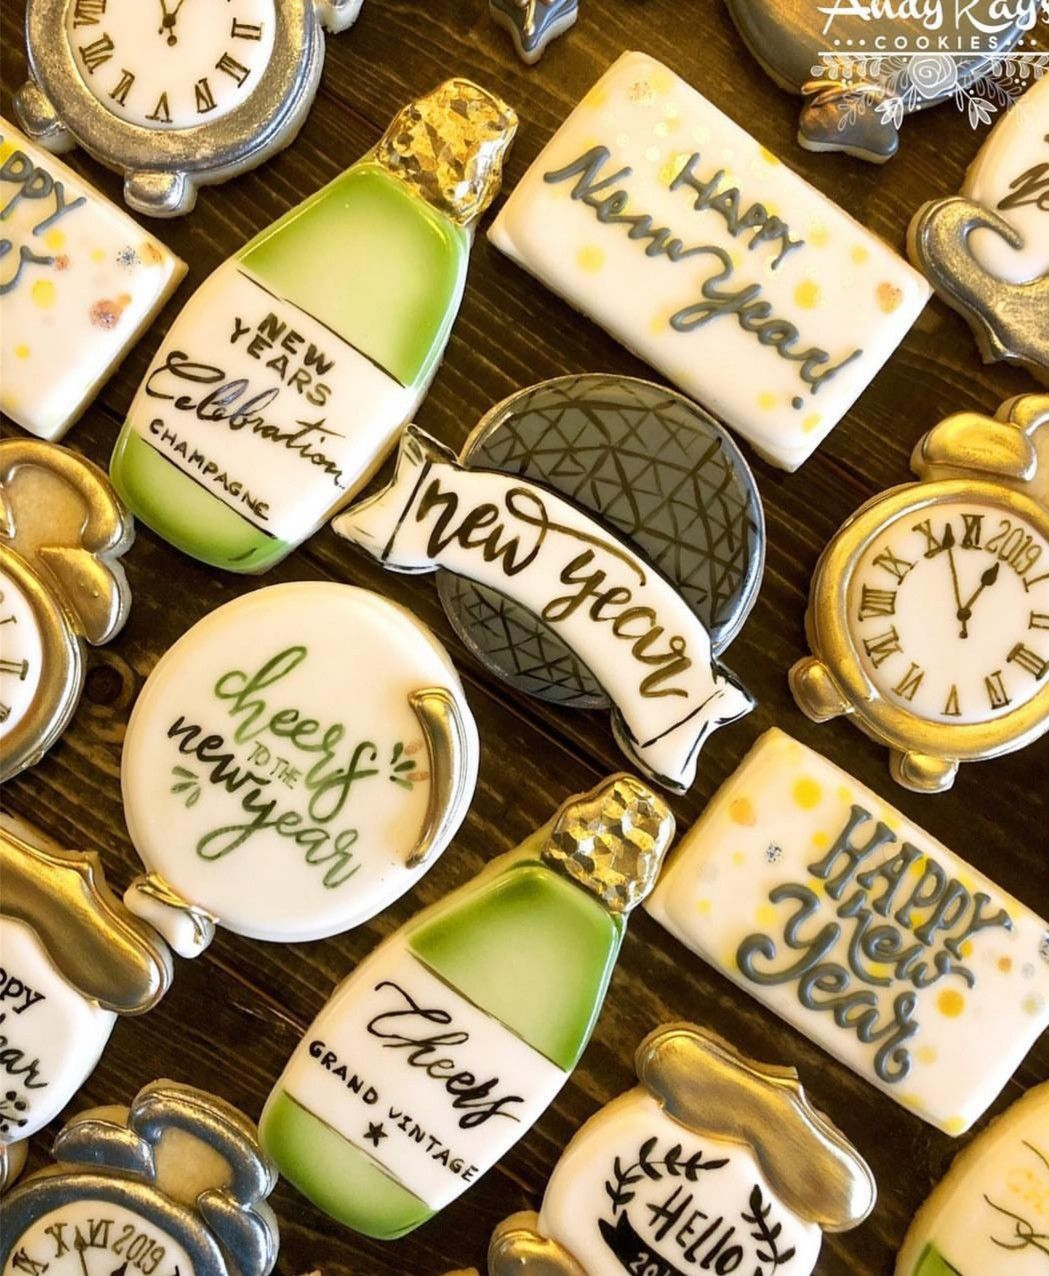 Pin by Wood on New Years Eve Theme New years cookies